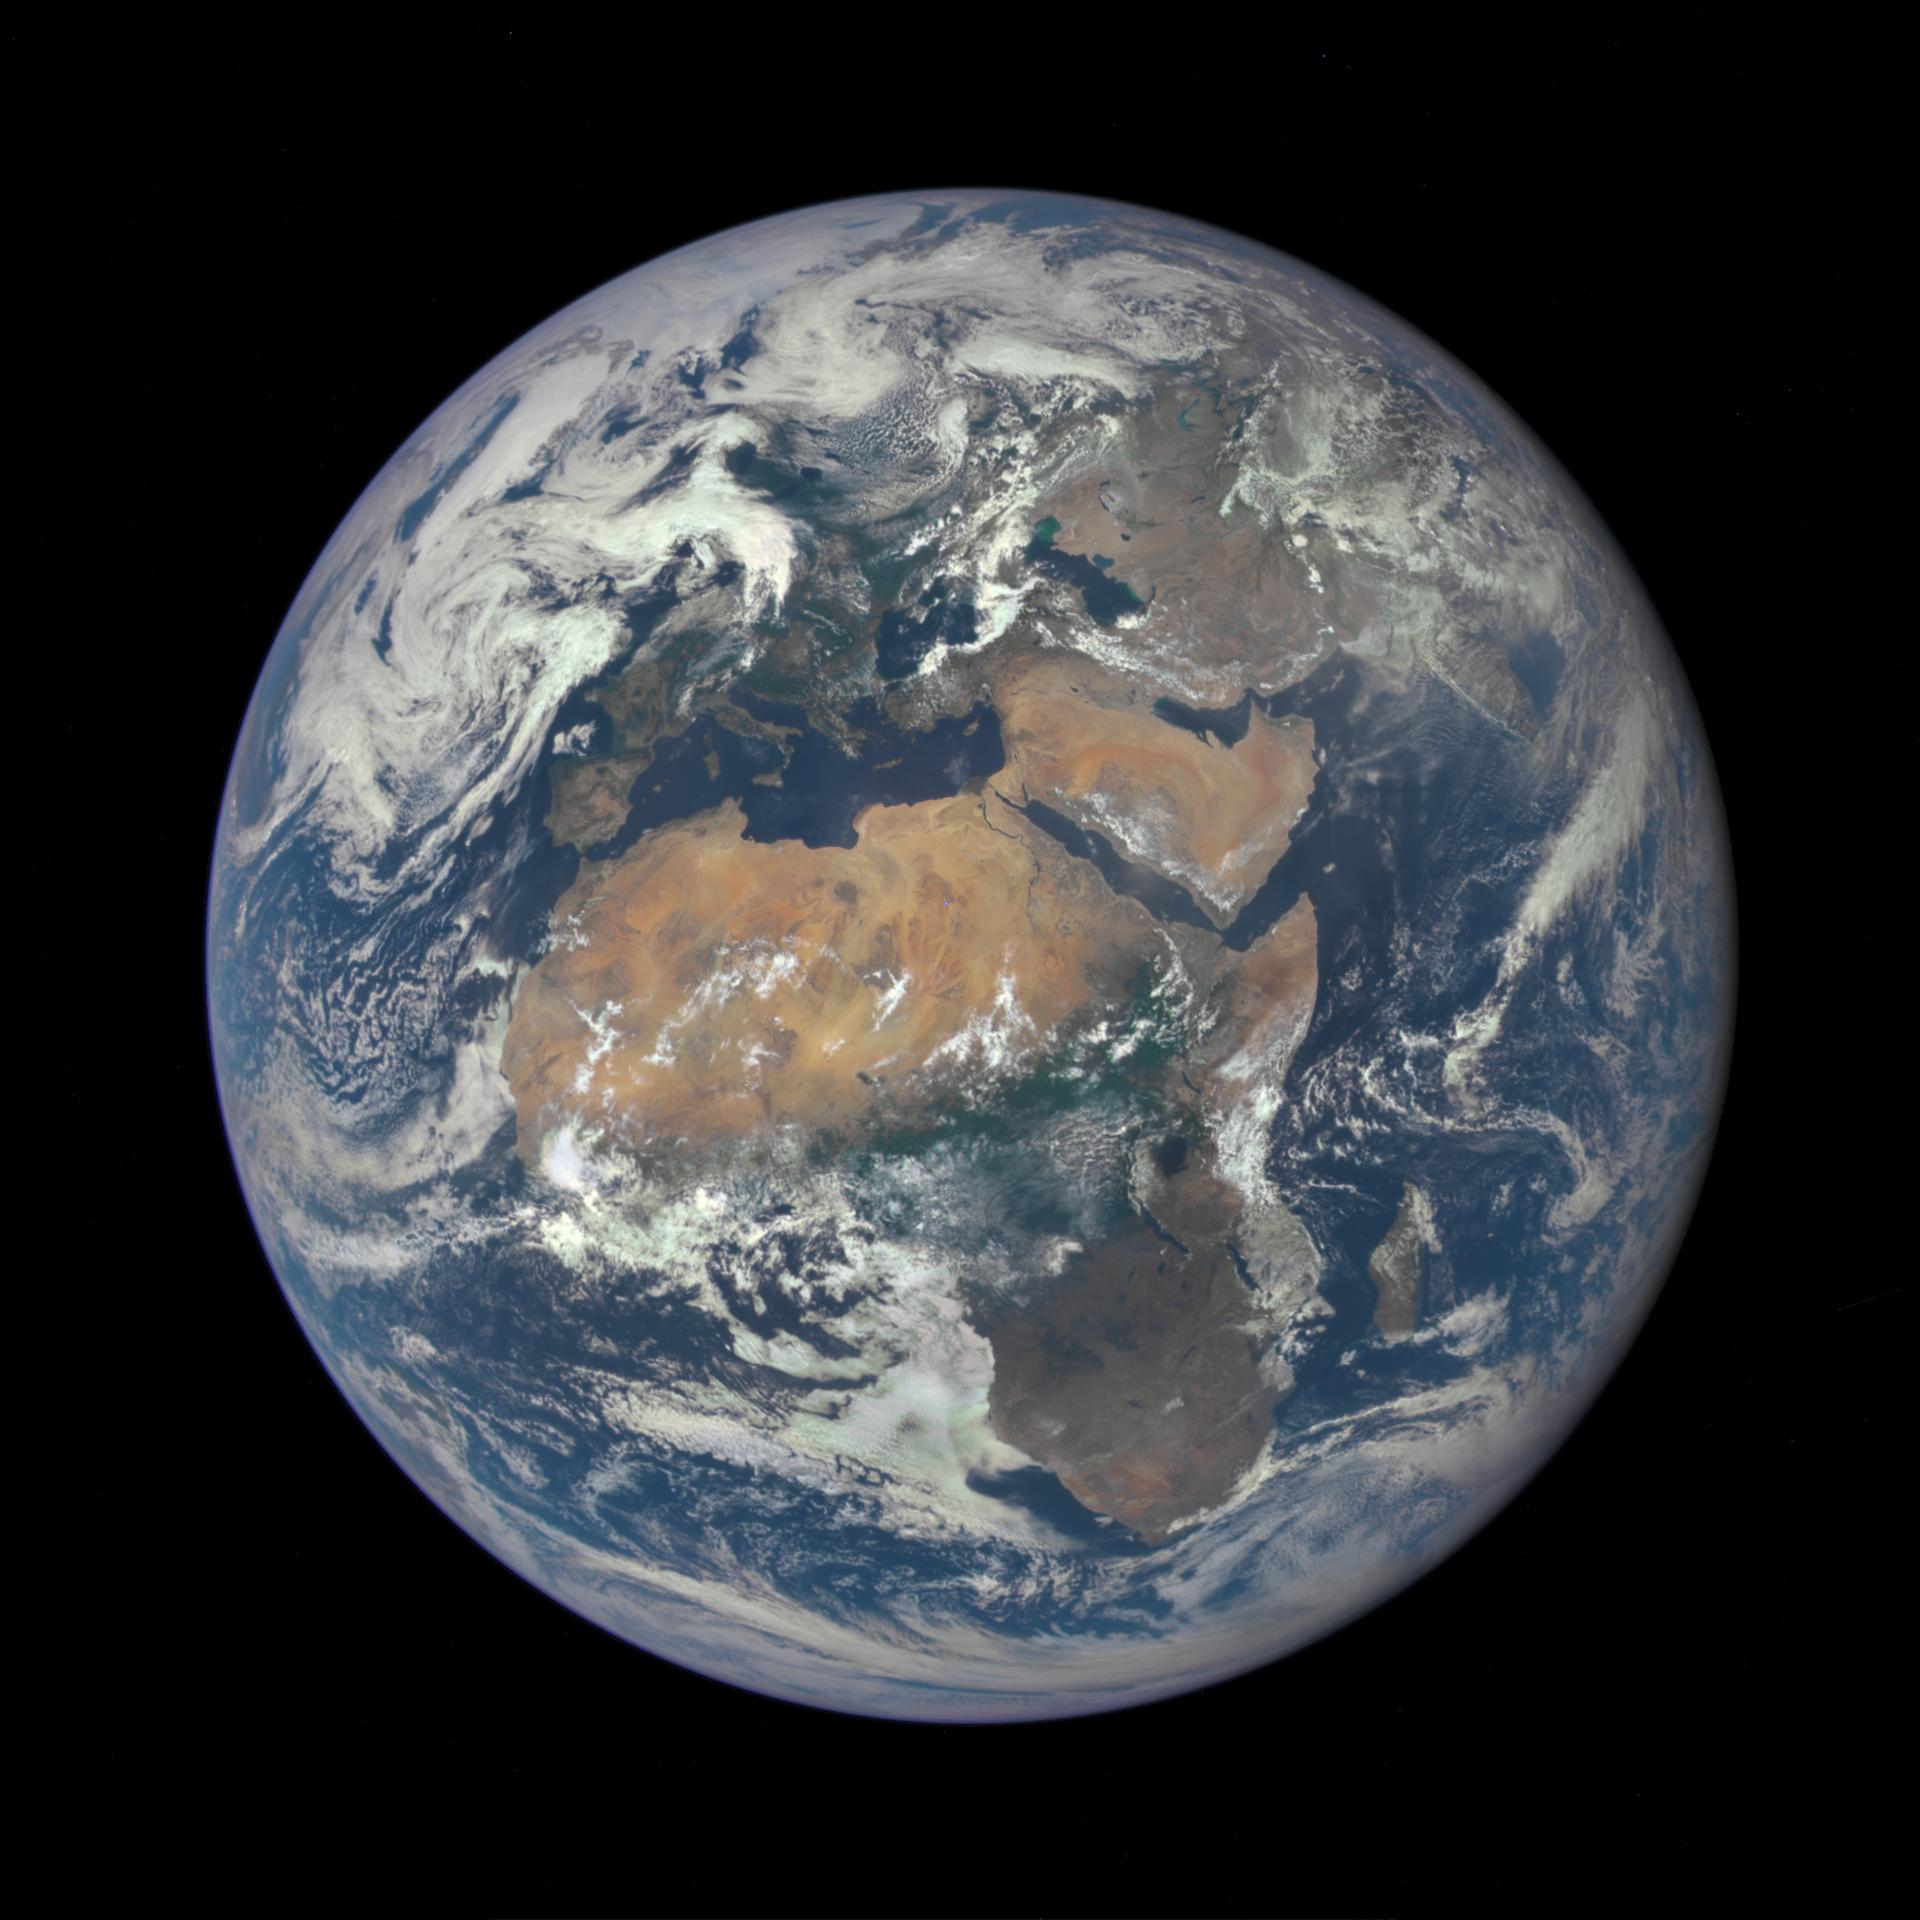 Africa shown in 2015, one million miles from Earth, in a picture taken by the Deep Space Climate Observatory satellite. The picture is a combination of three separate images of the entire Earth taken a few minutes apart.